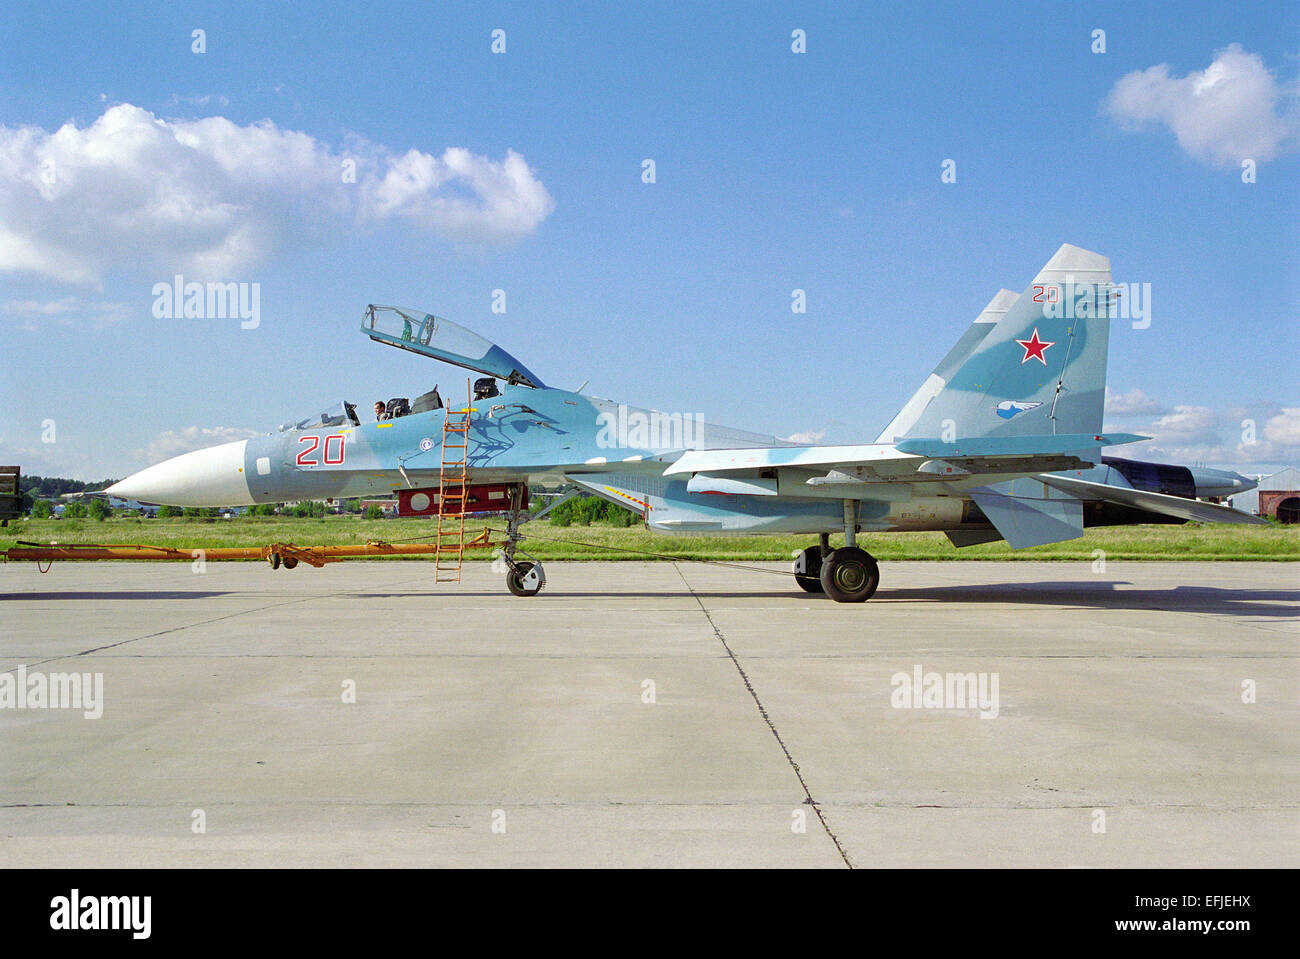 Sukhoi Su-27UB air superiority fighter - Stock Image